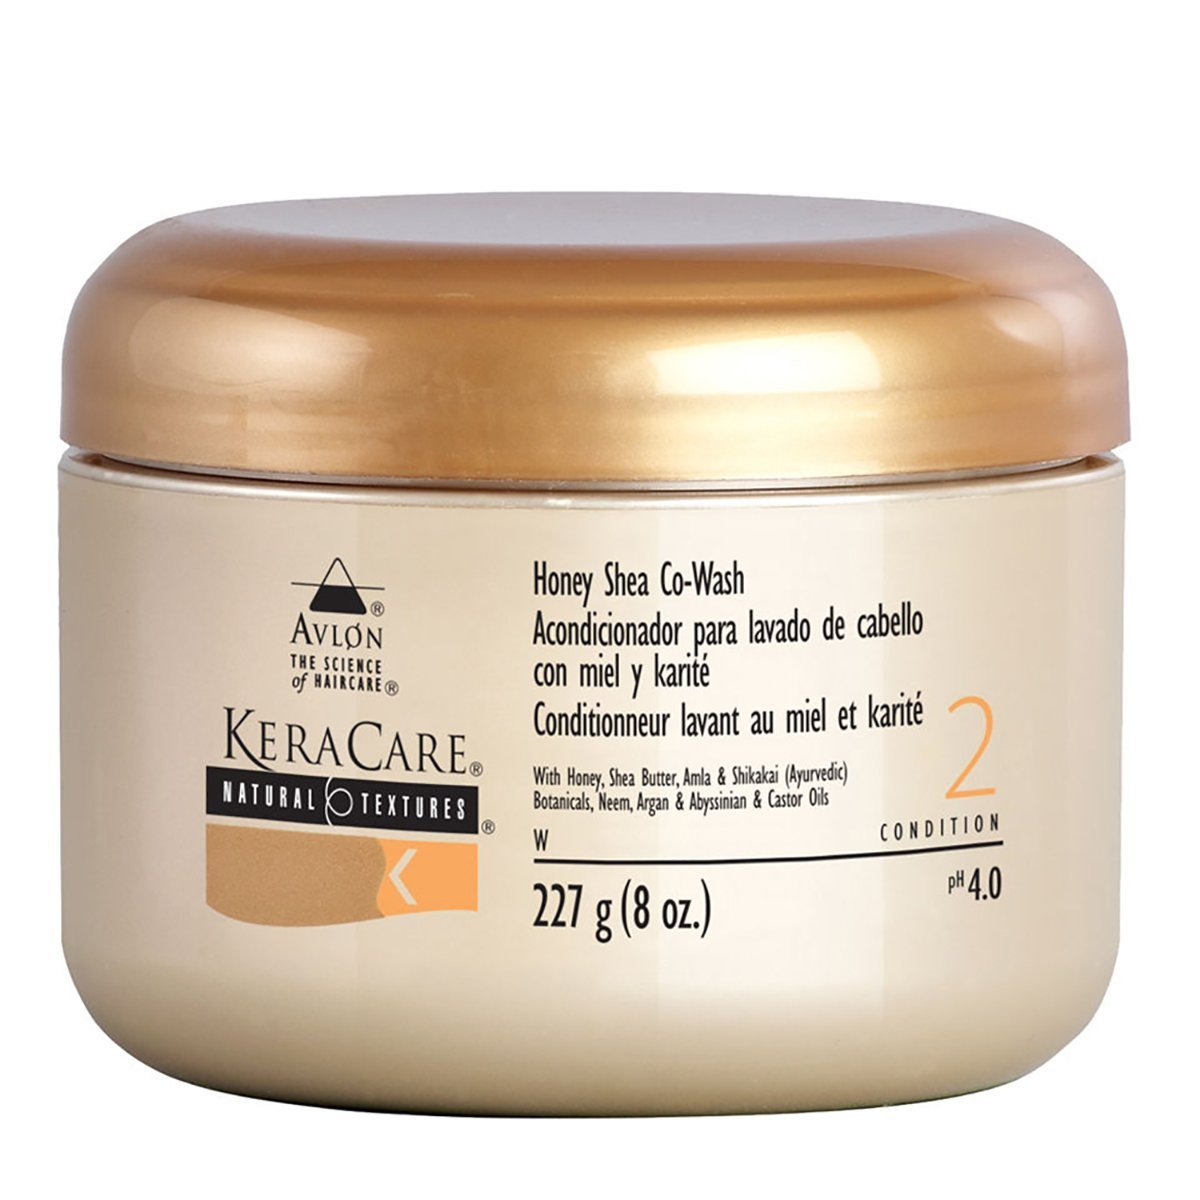 Avlon Keracare Natural Textures Honey Shea Co-Wash -Size 8 oz